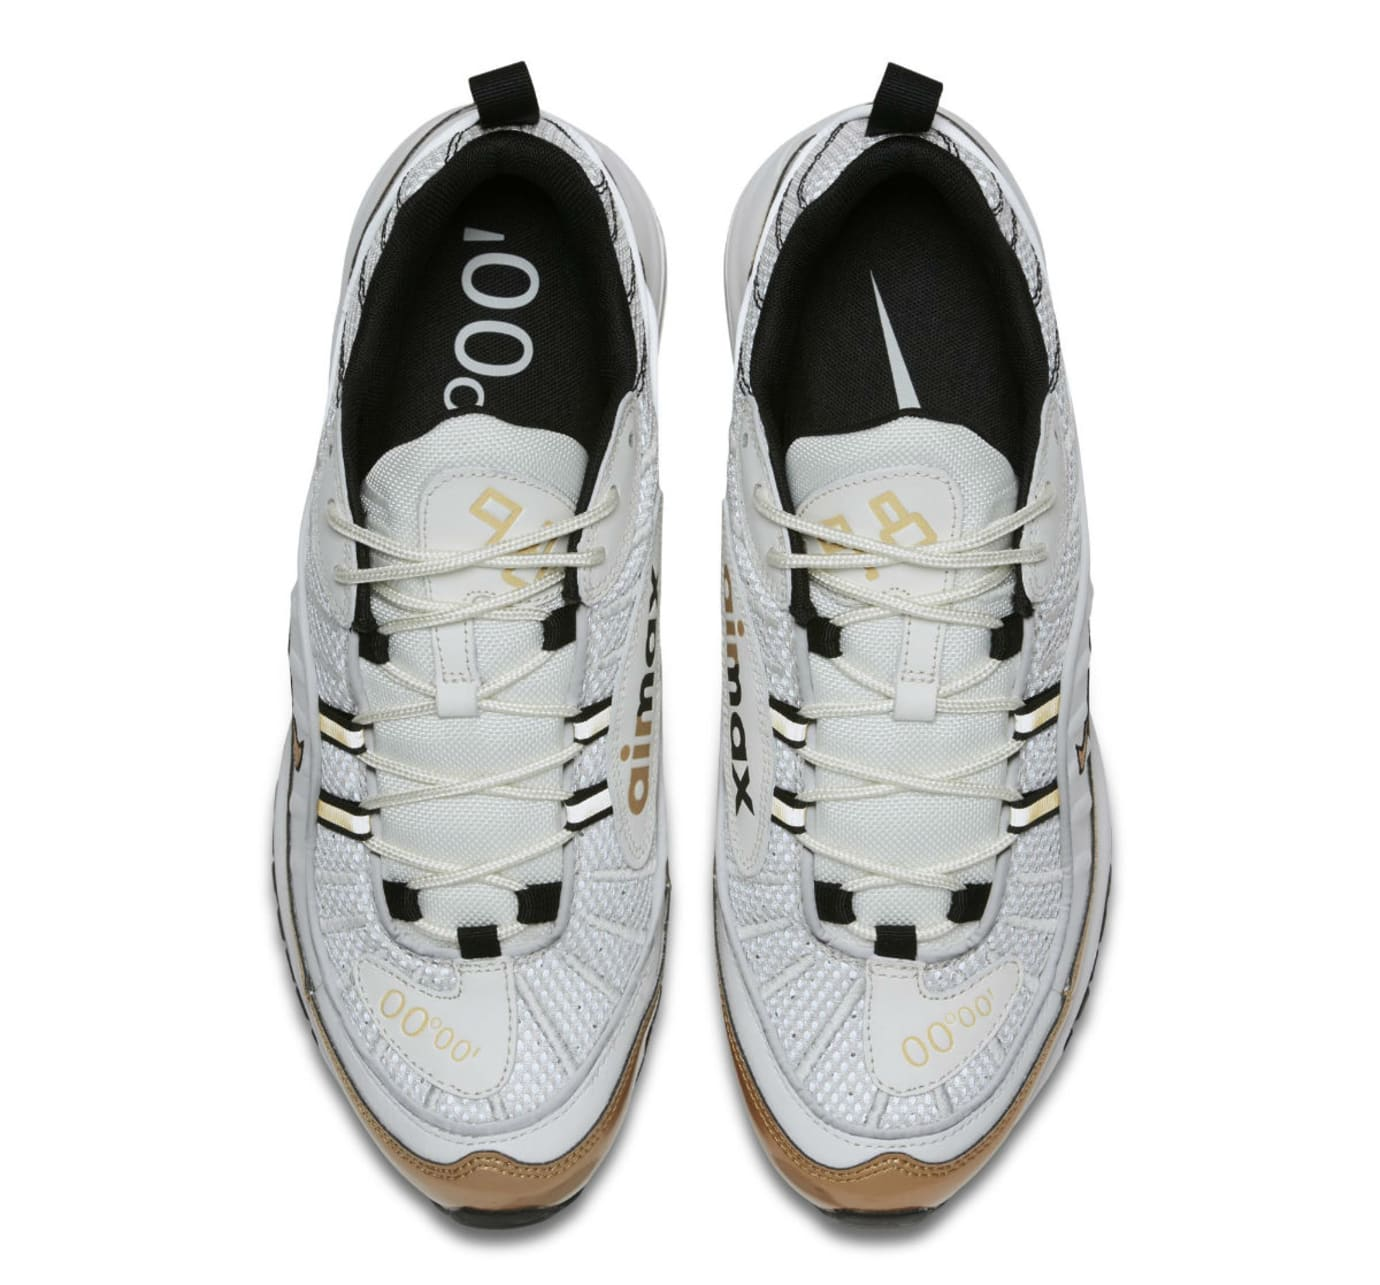 Nike Air Max 98 UK White Gold Release Date Top